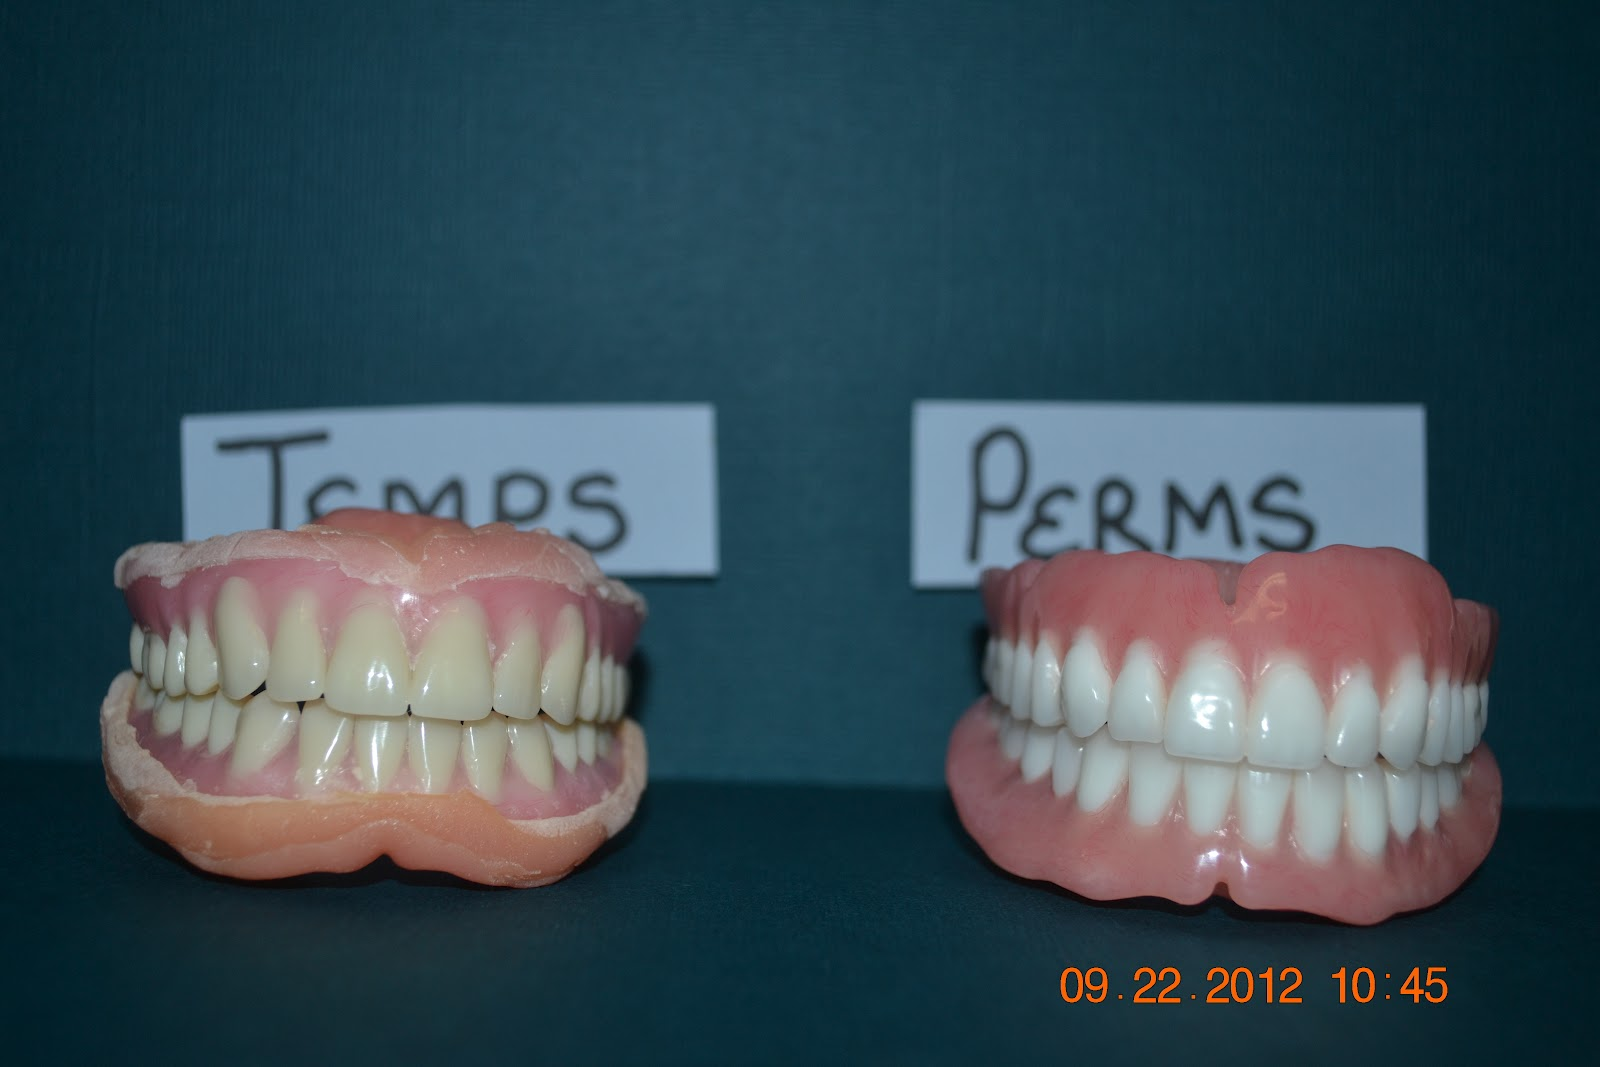 Temporary vs permanent dentures iweardentures permanent dentures solutioingenieria Image collections